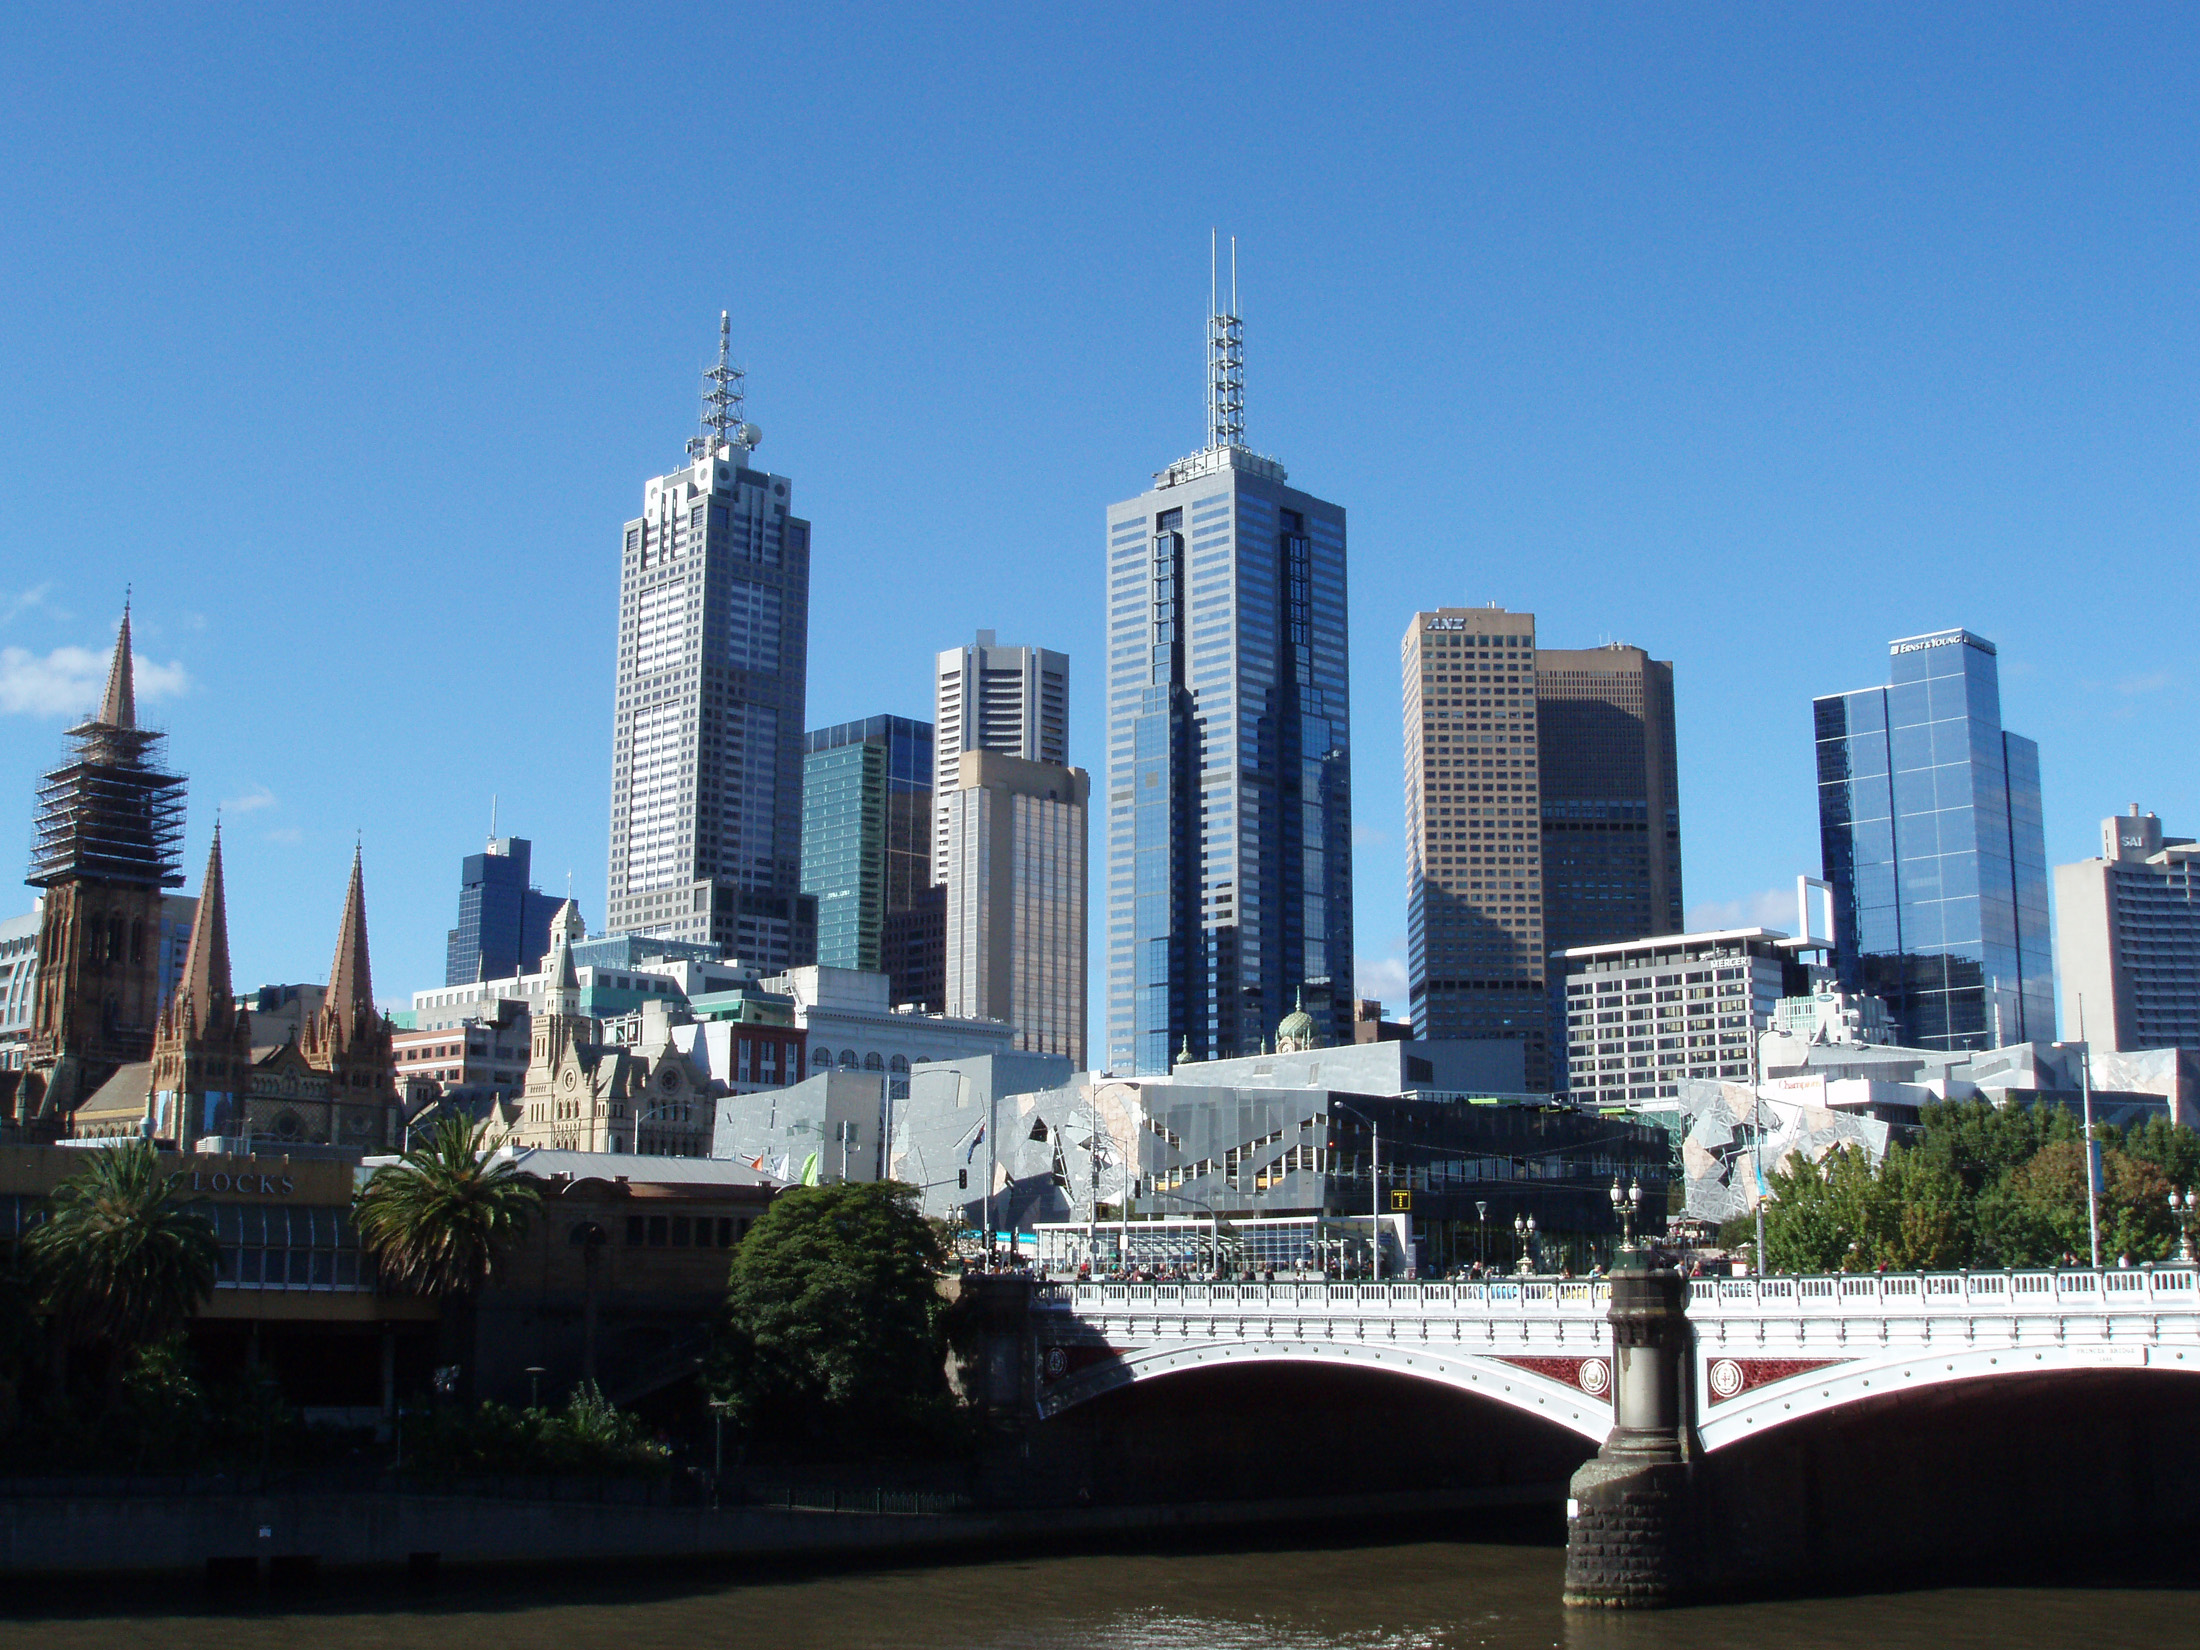 Architectural High Rise Buildings at Melbourne Central Business District Skyline on Light Blue Sky Background.